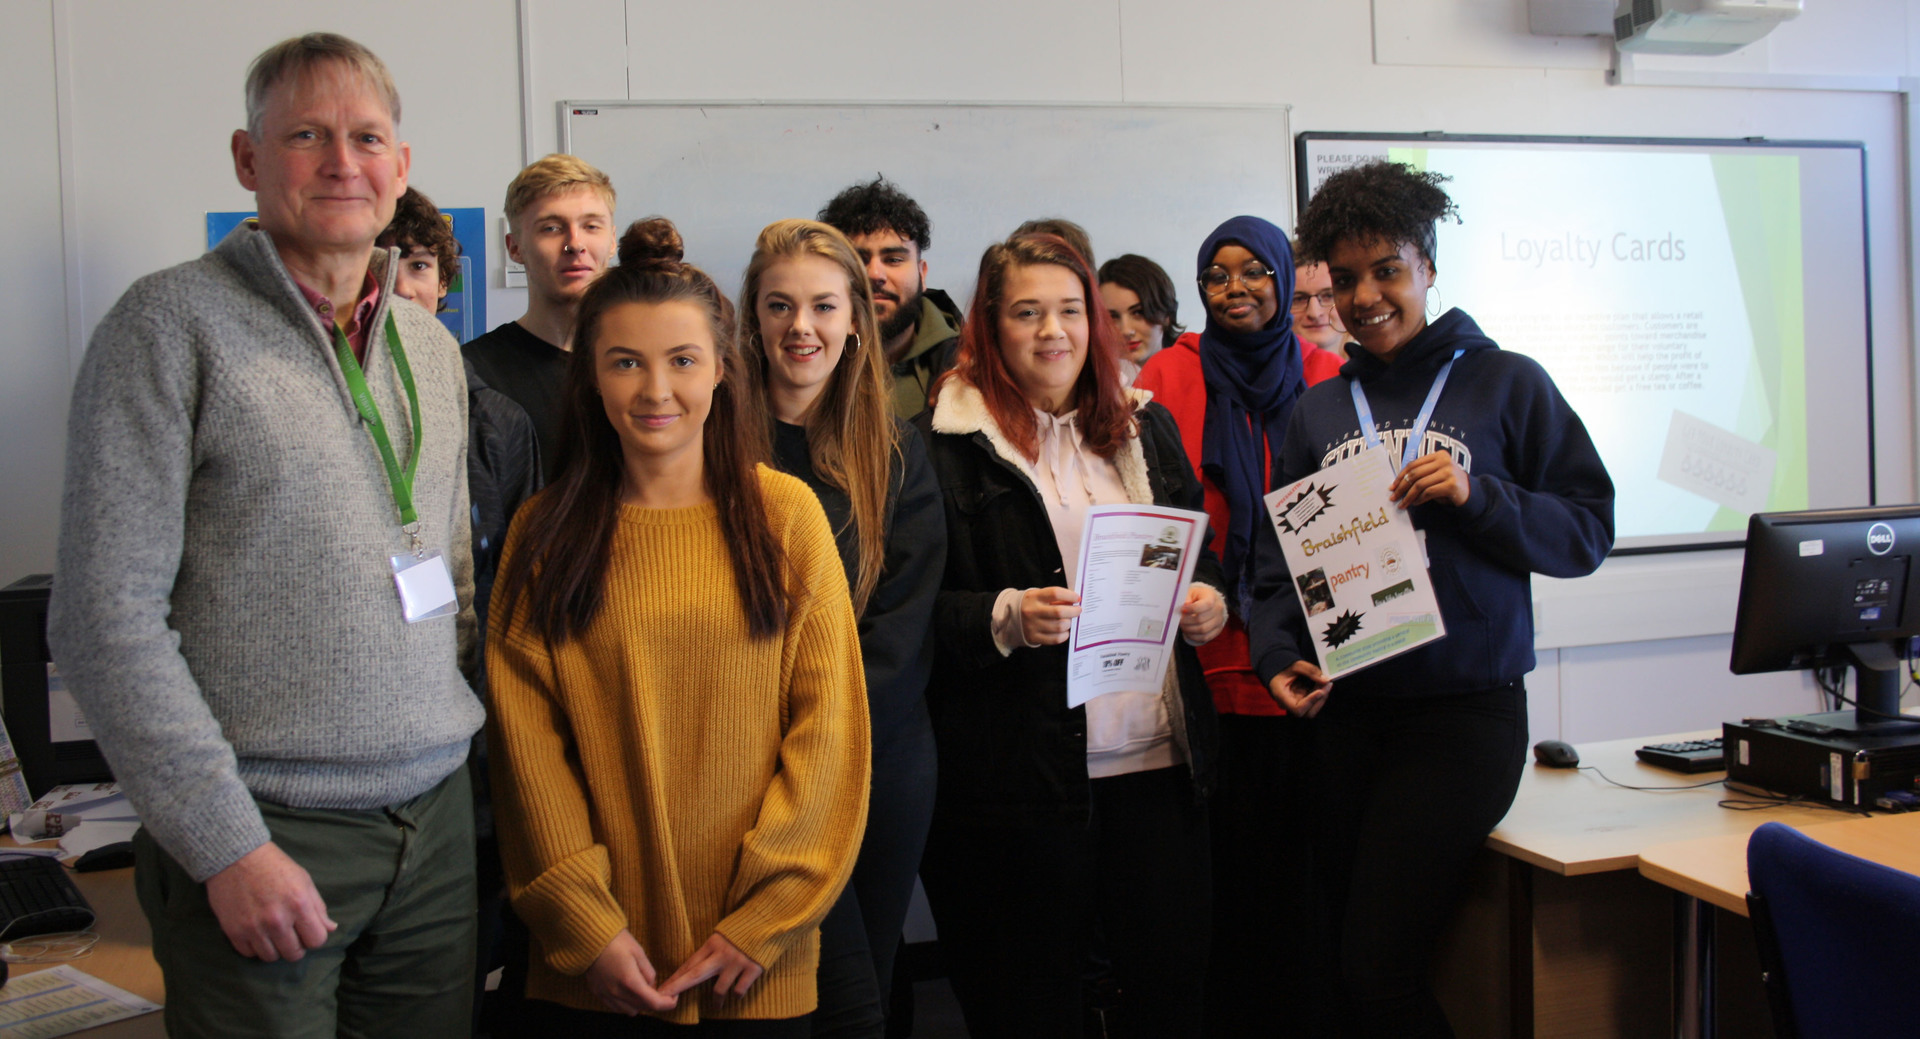 Students make profitability pitch to local organisation